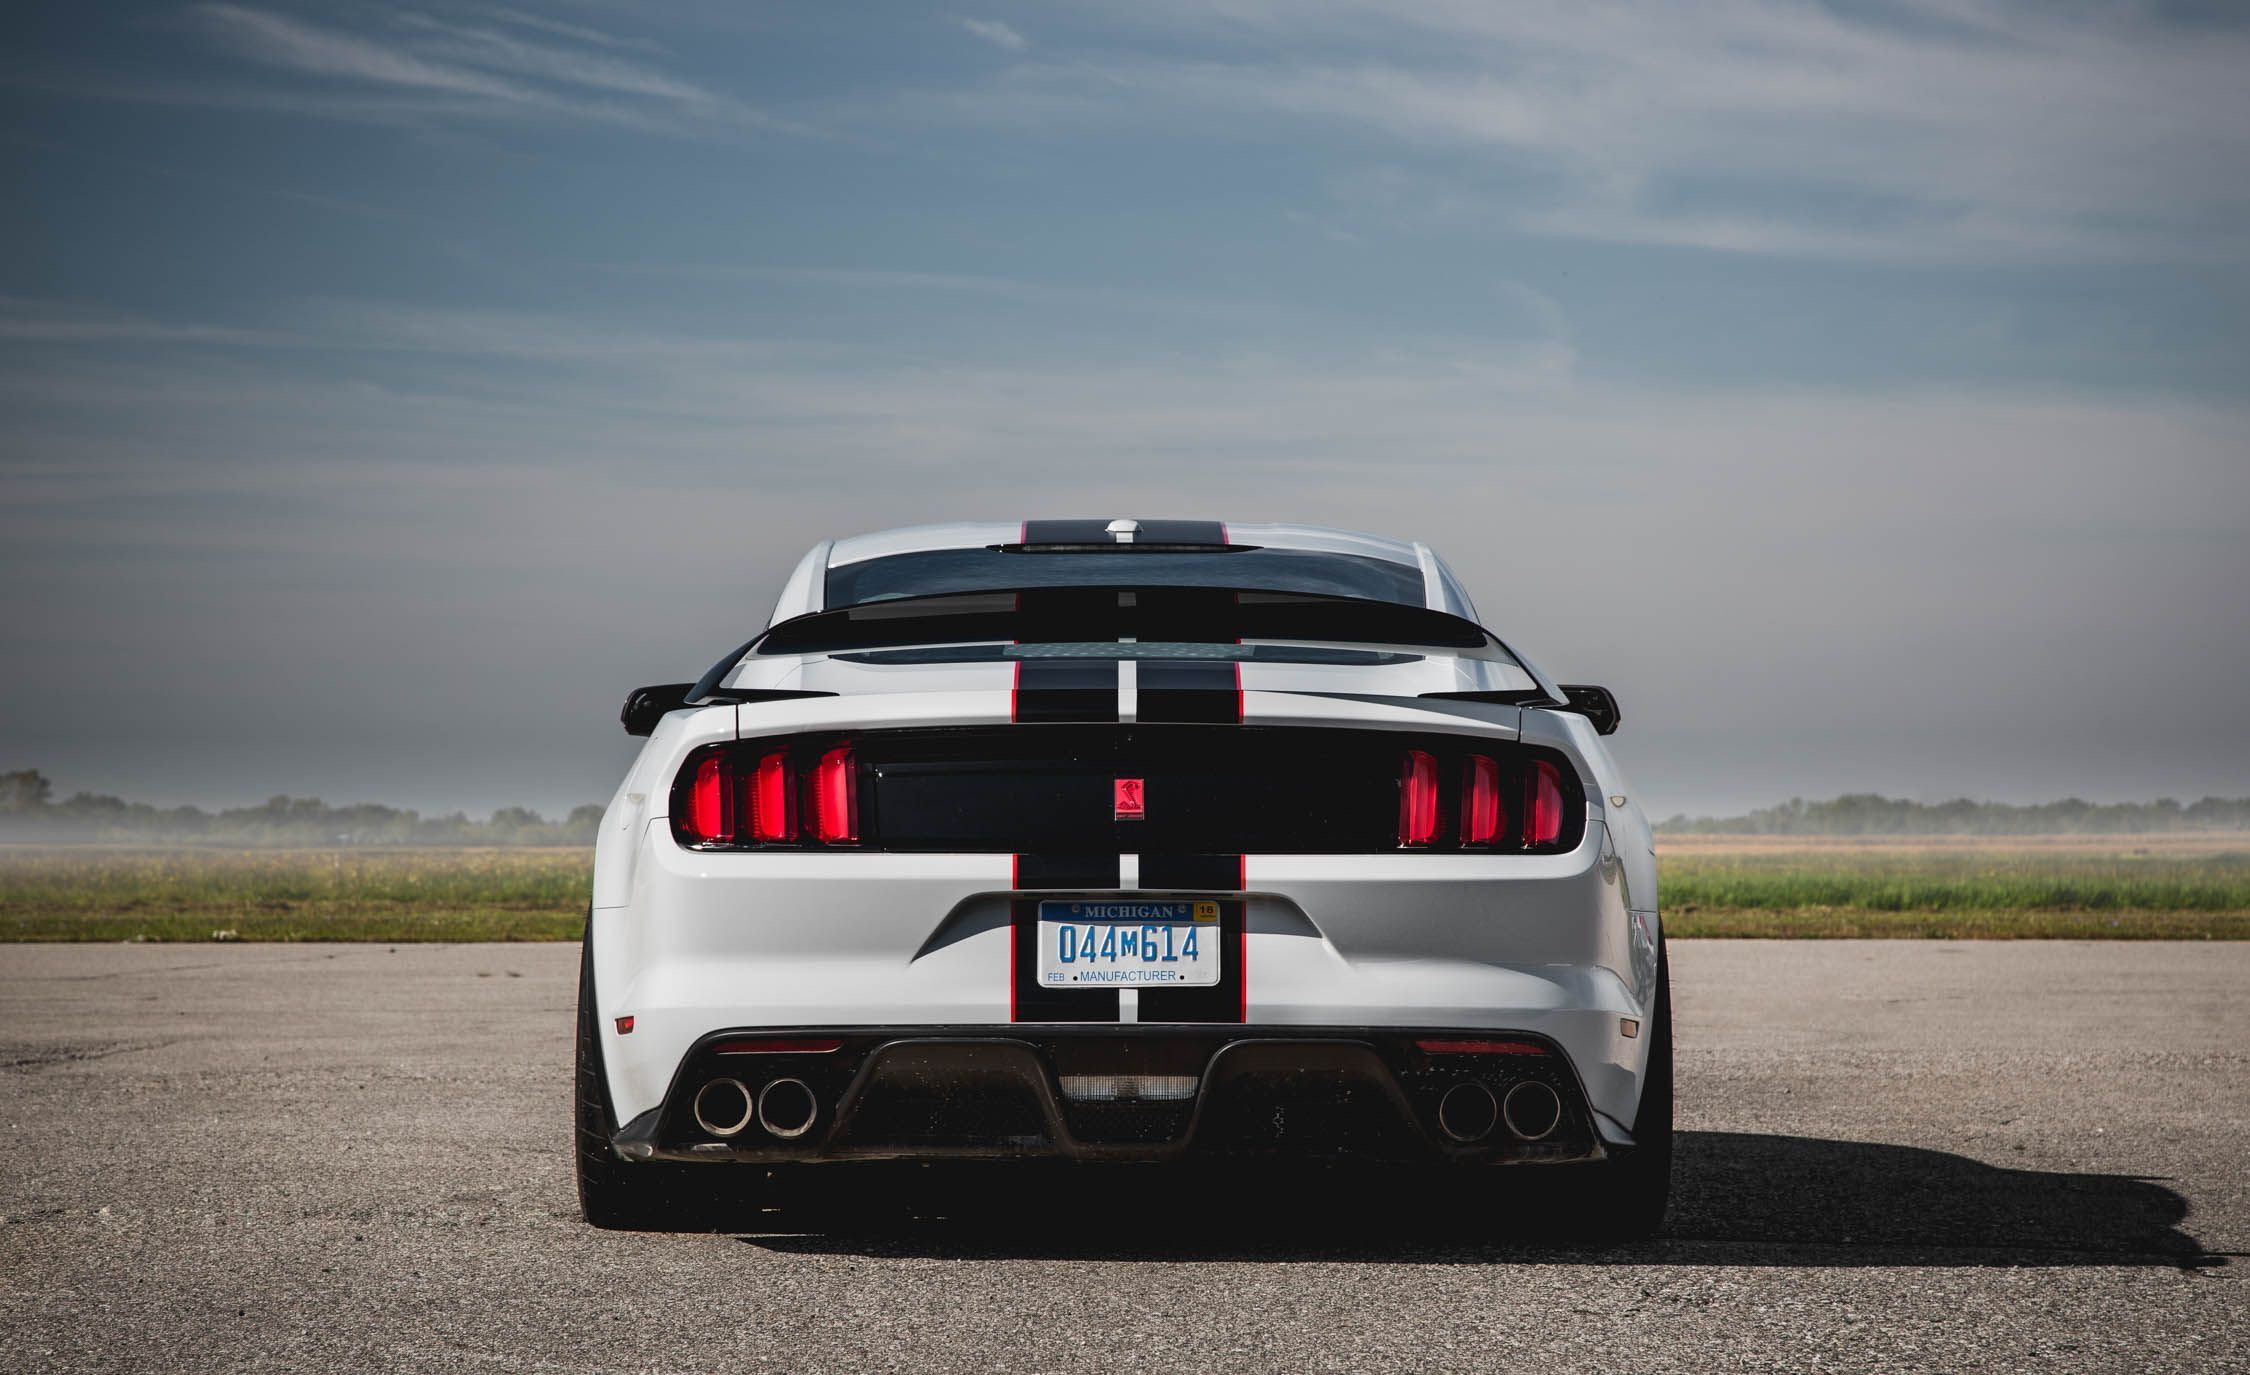 2016 ford mustang shelby gt350r exterior rear view 7858 cars performance reviews